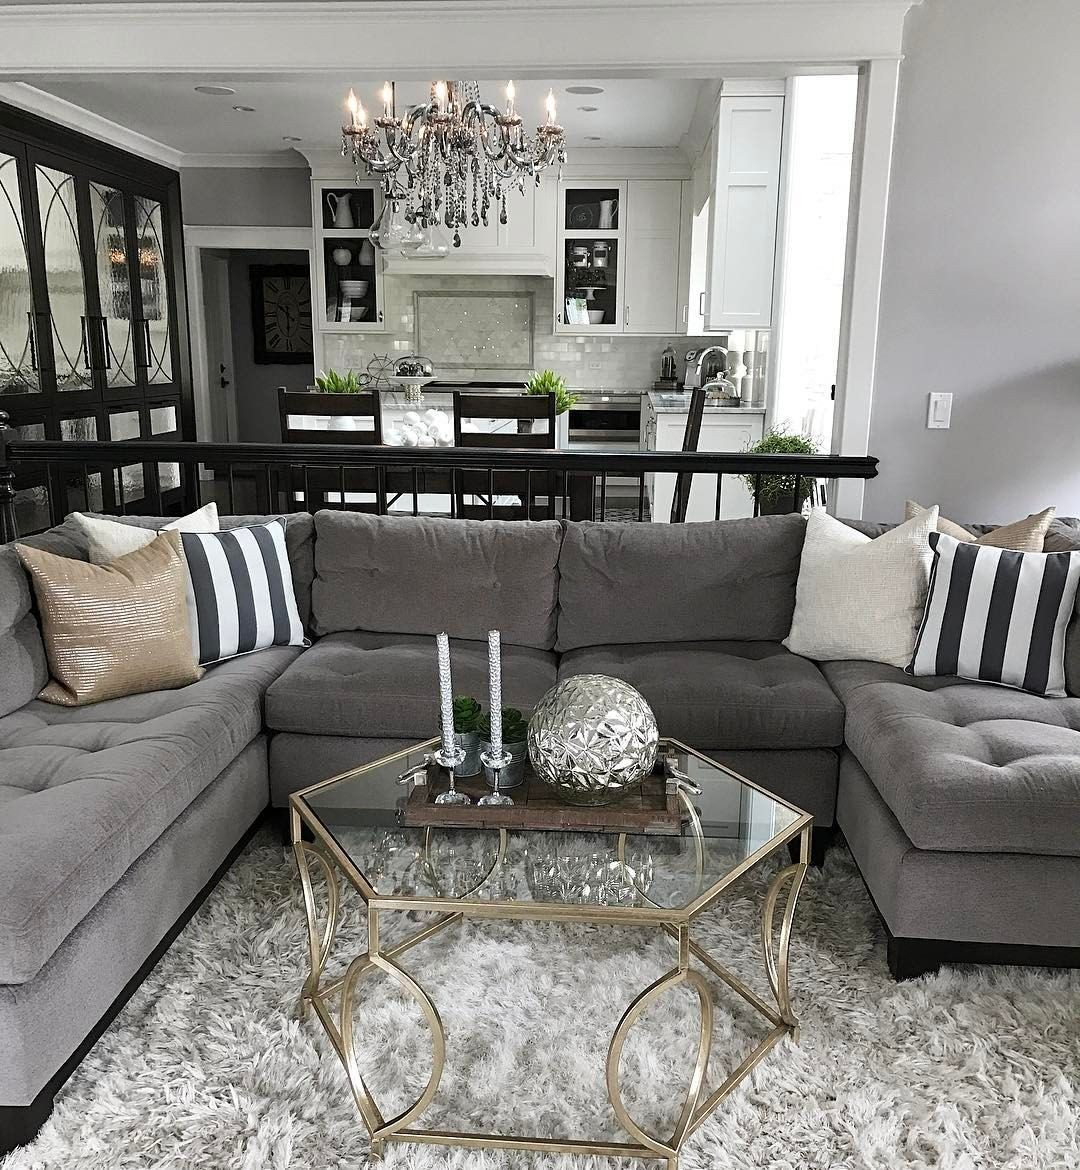 Gray sofa Living Room Decor Change Up the Gray Couch with and Chic Black and White